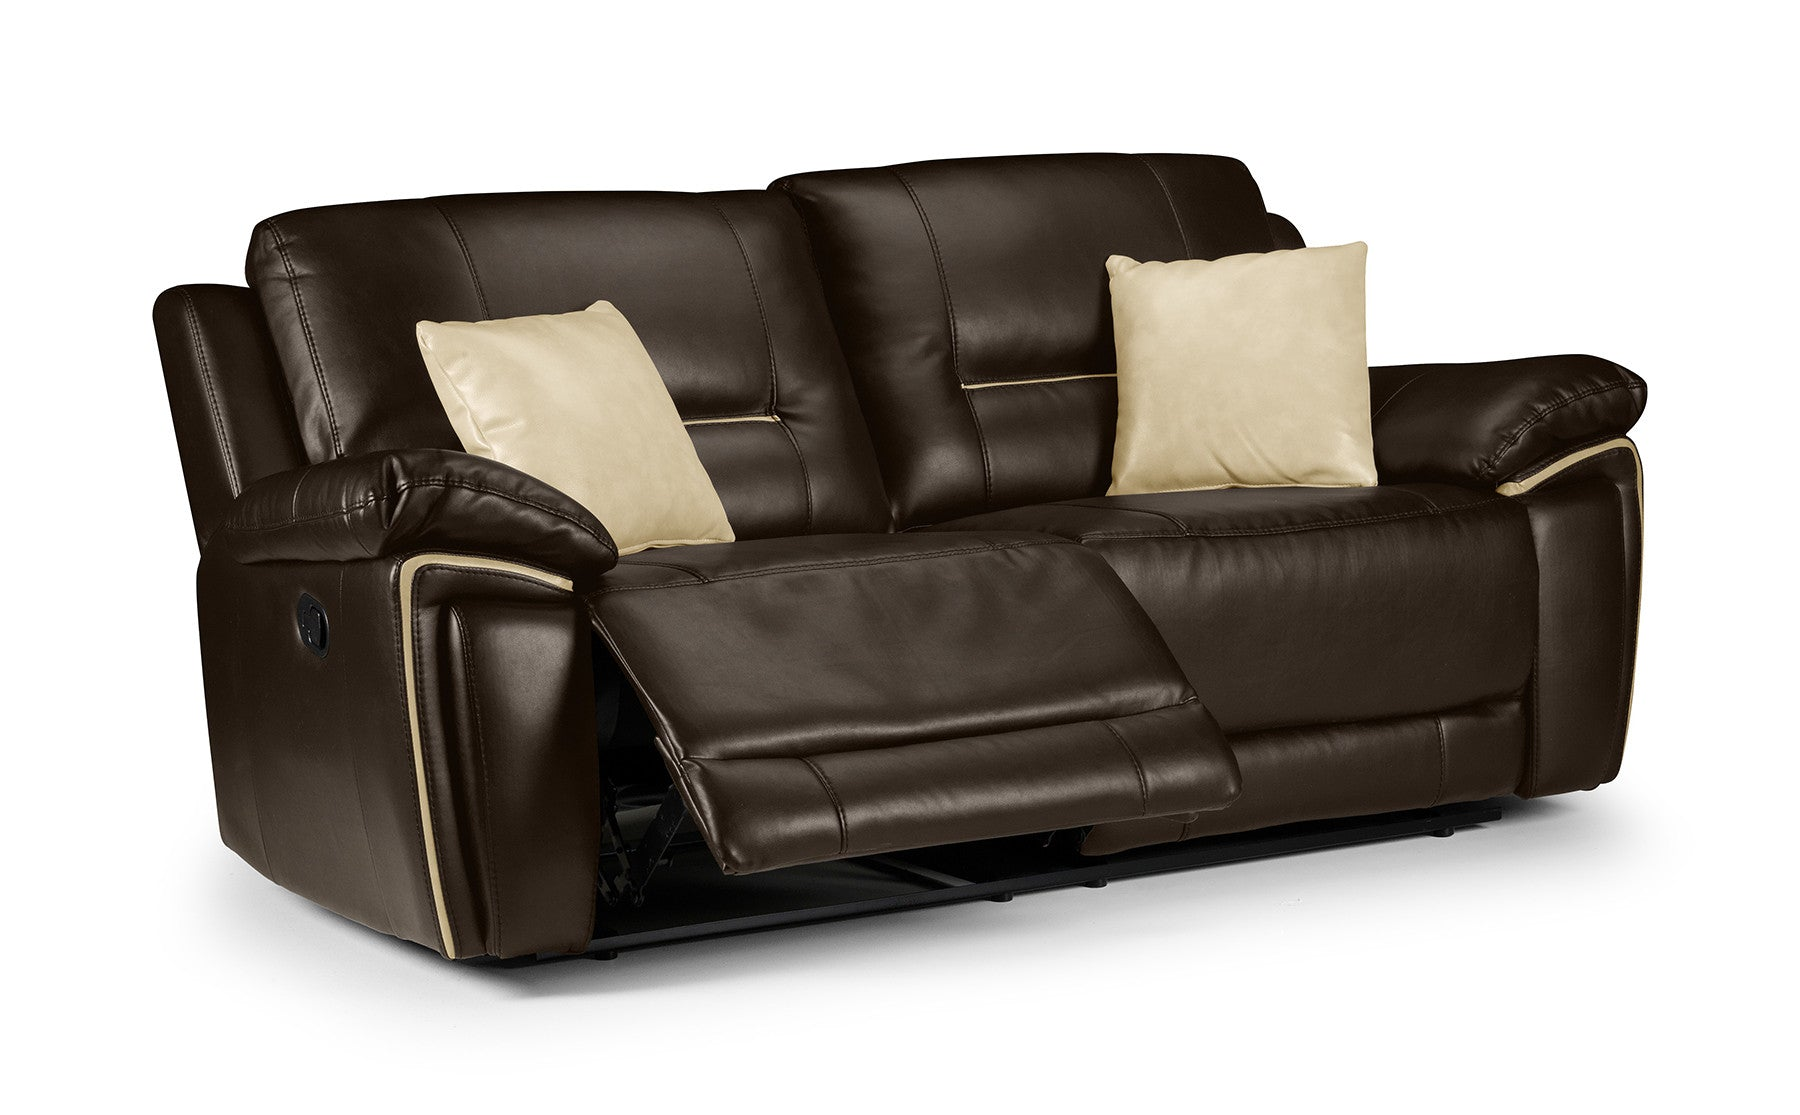 Recliner Sofas in Sheffield